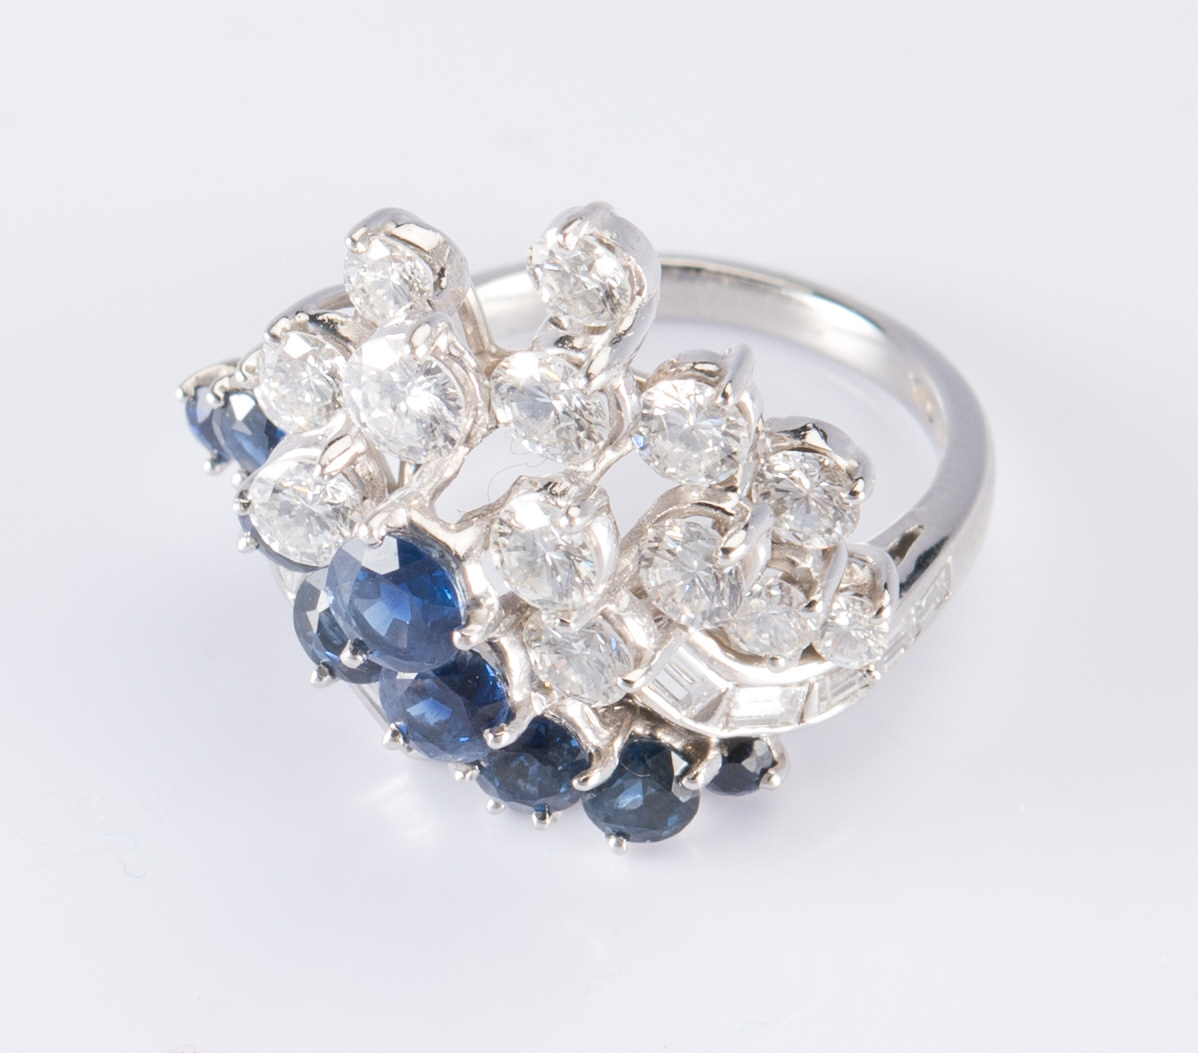 Lot 316: Platinum, Diamond, Sapphire Ring